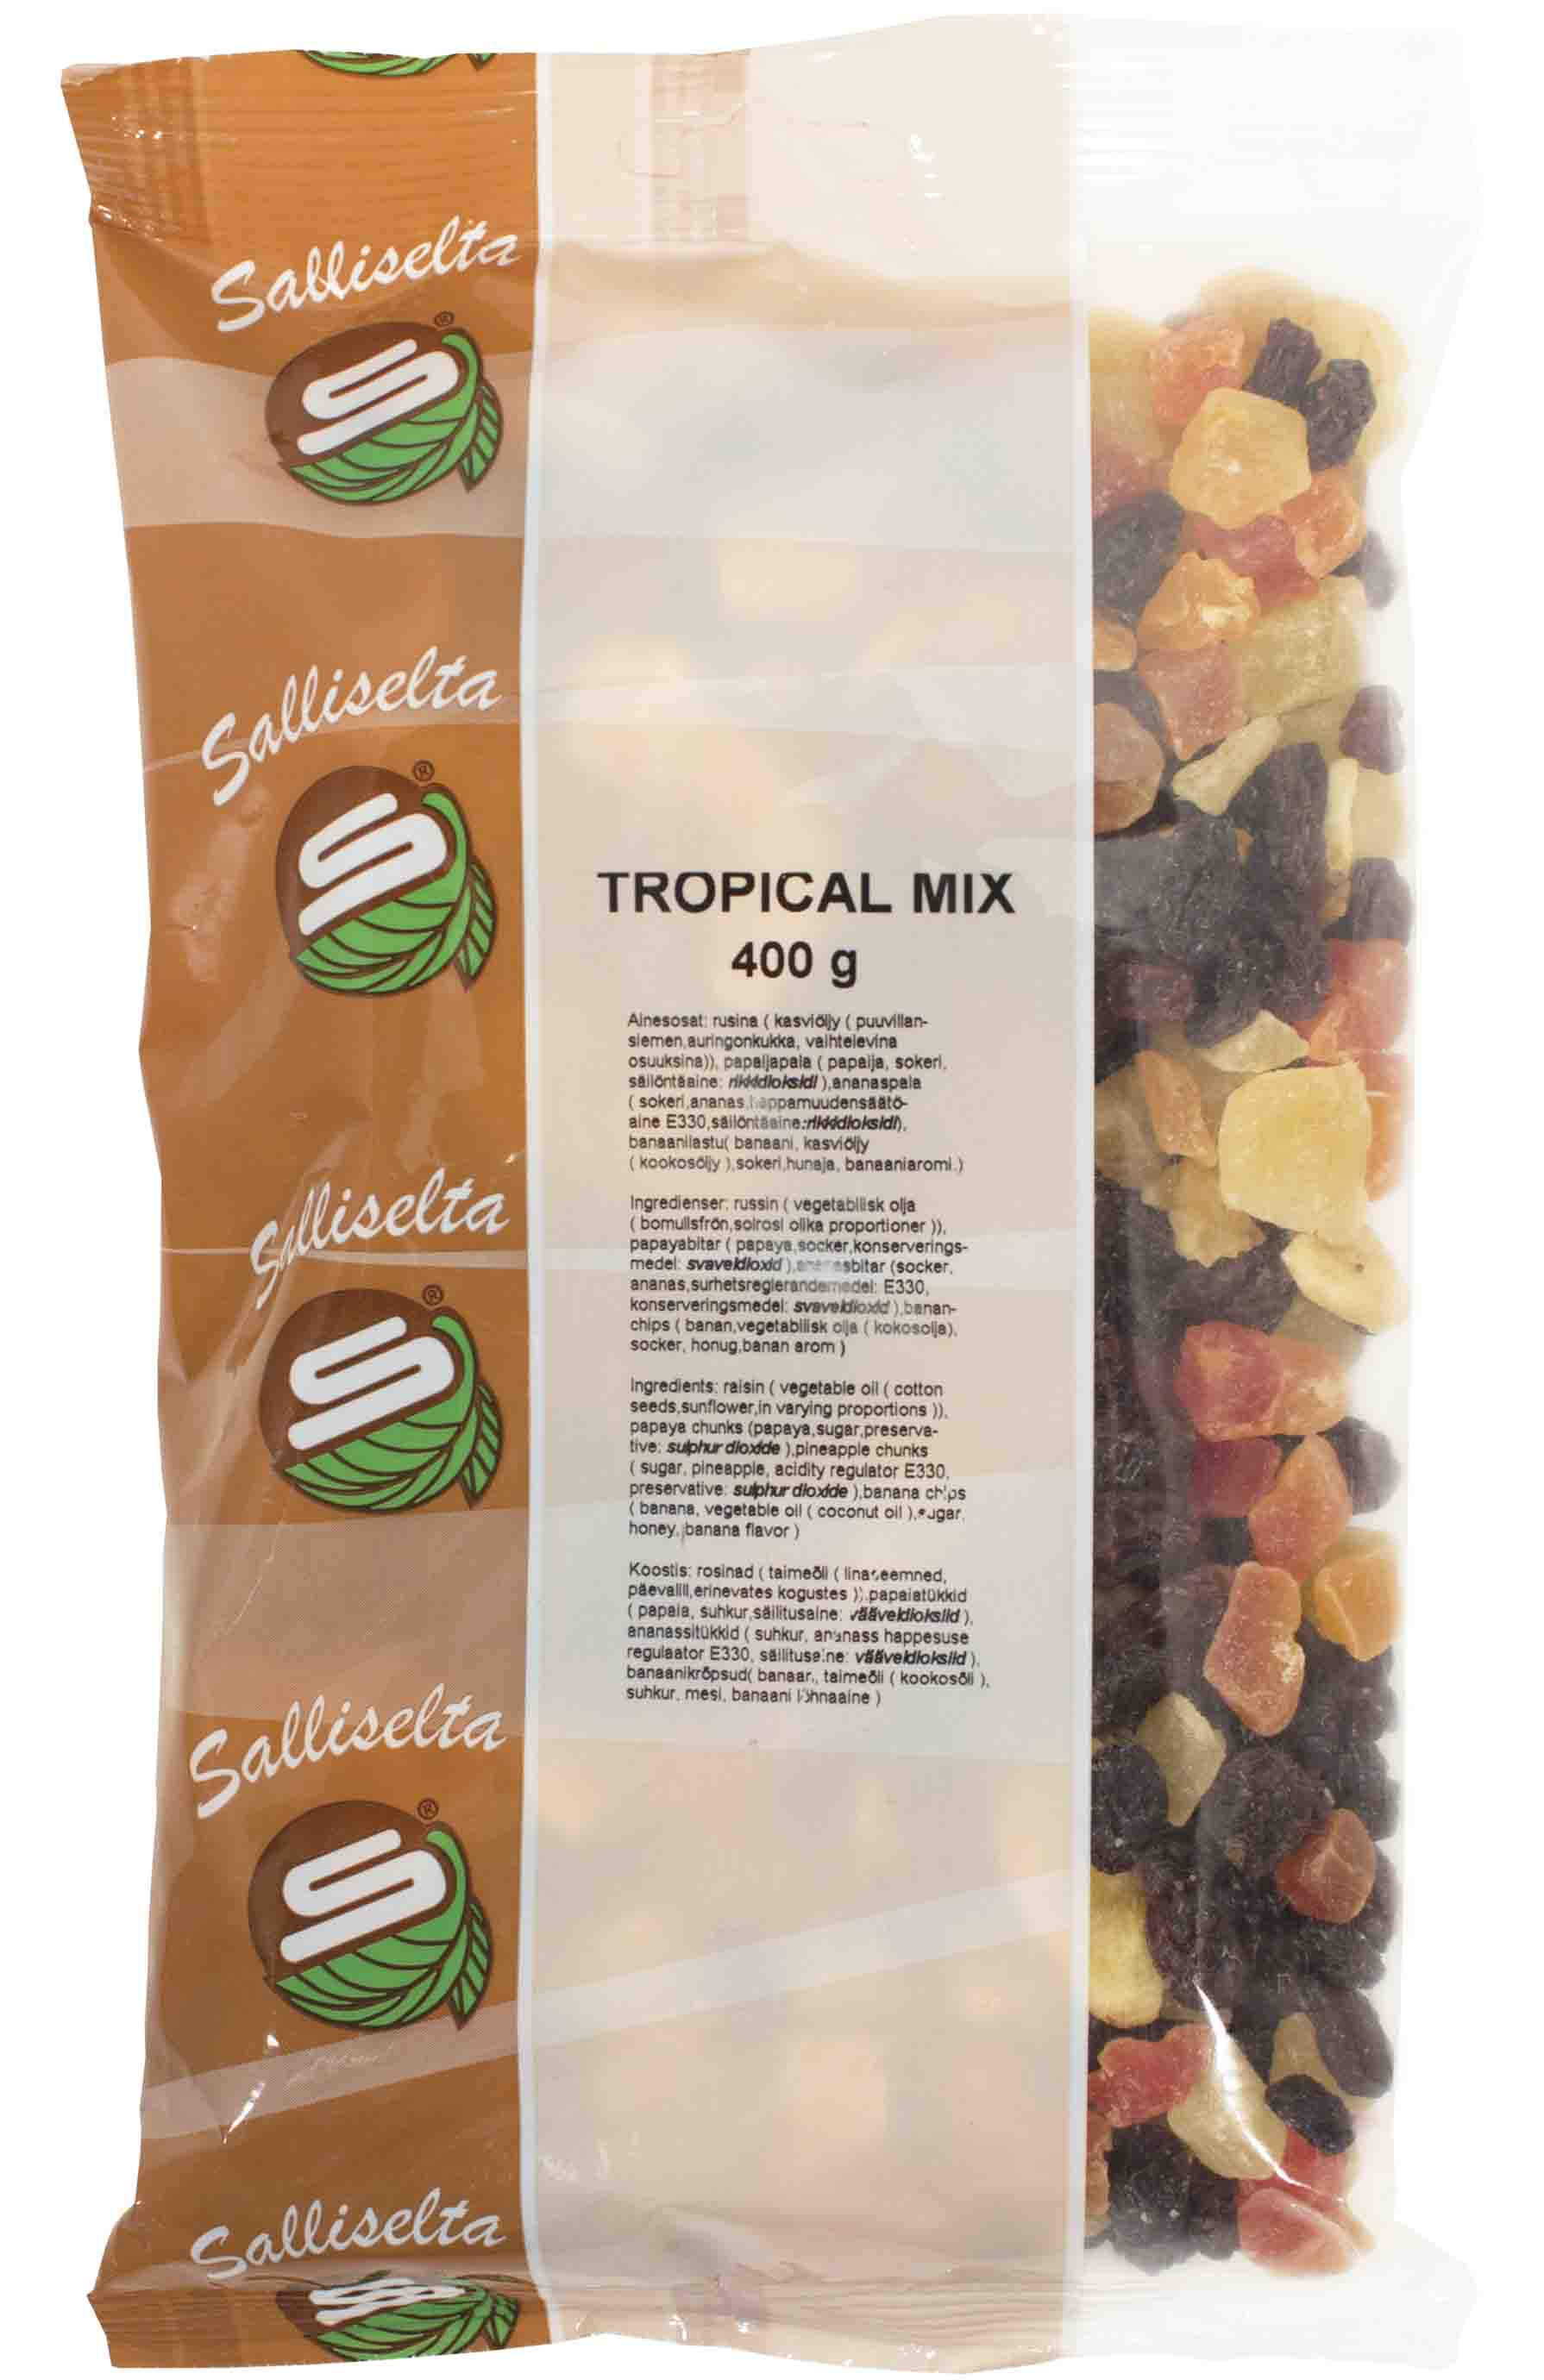 Tropical Mix 400g